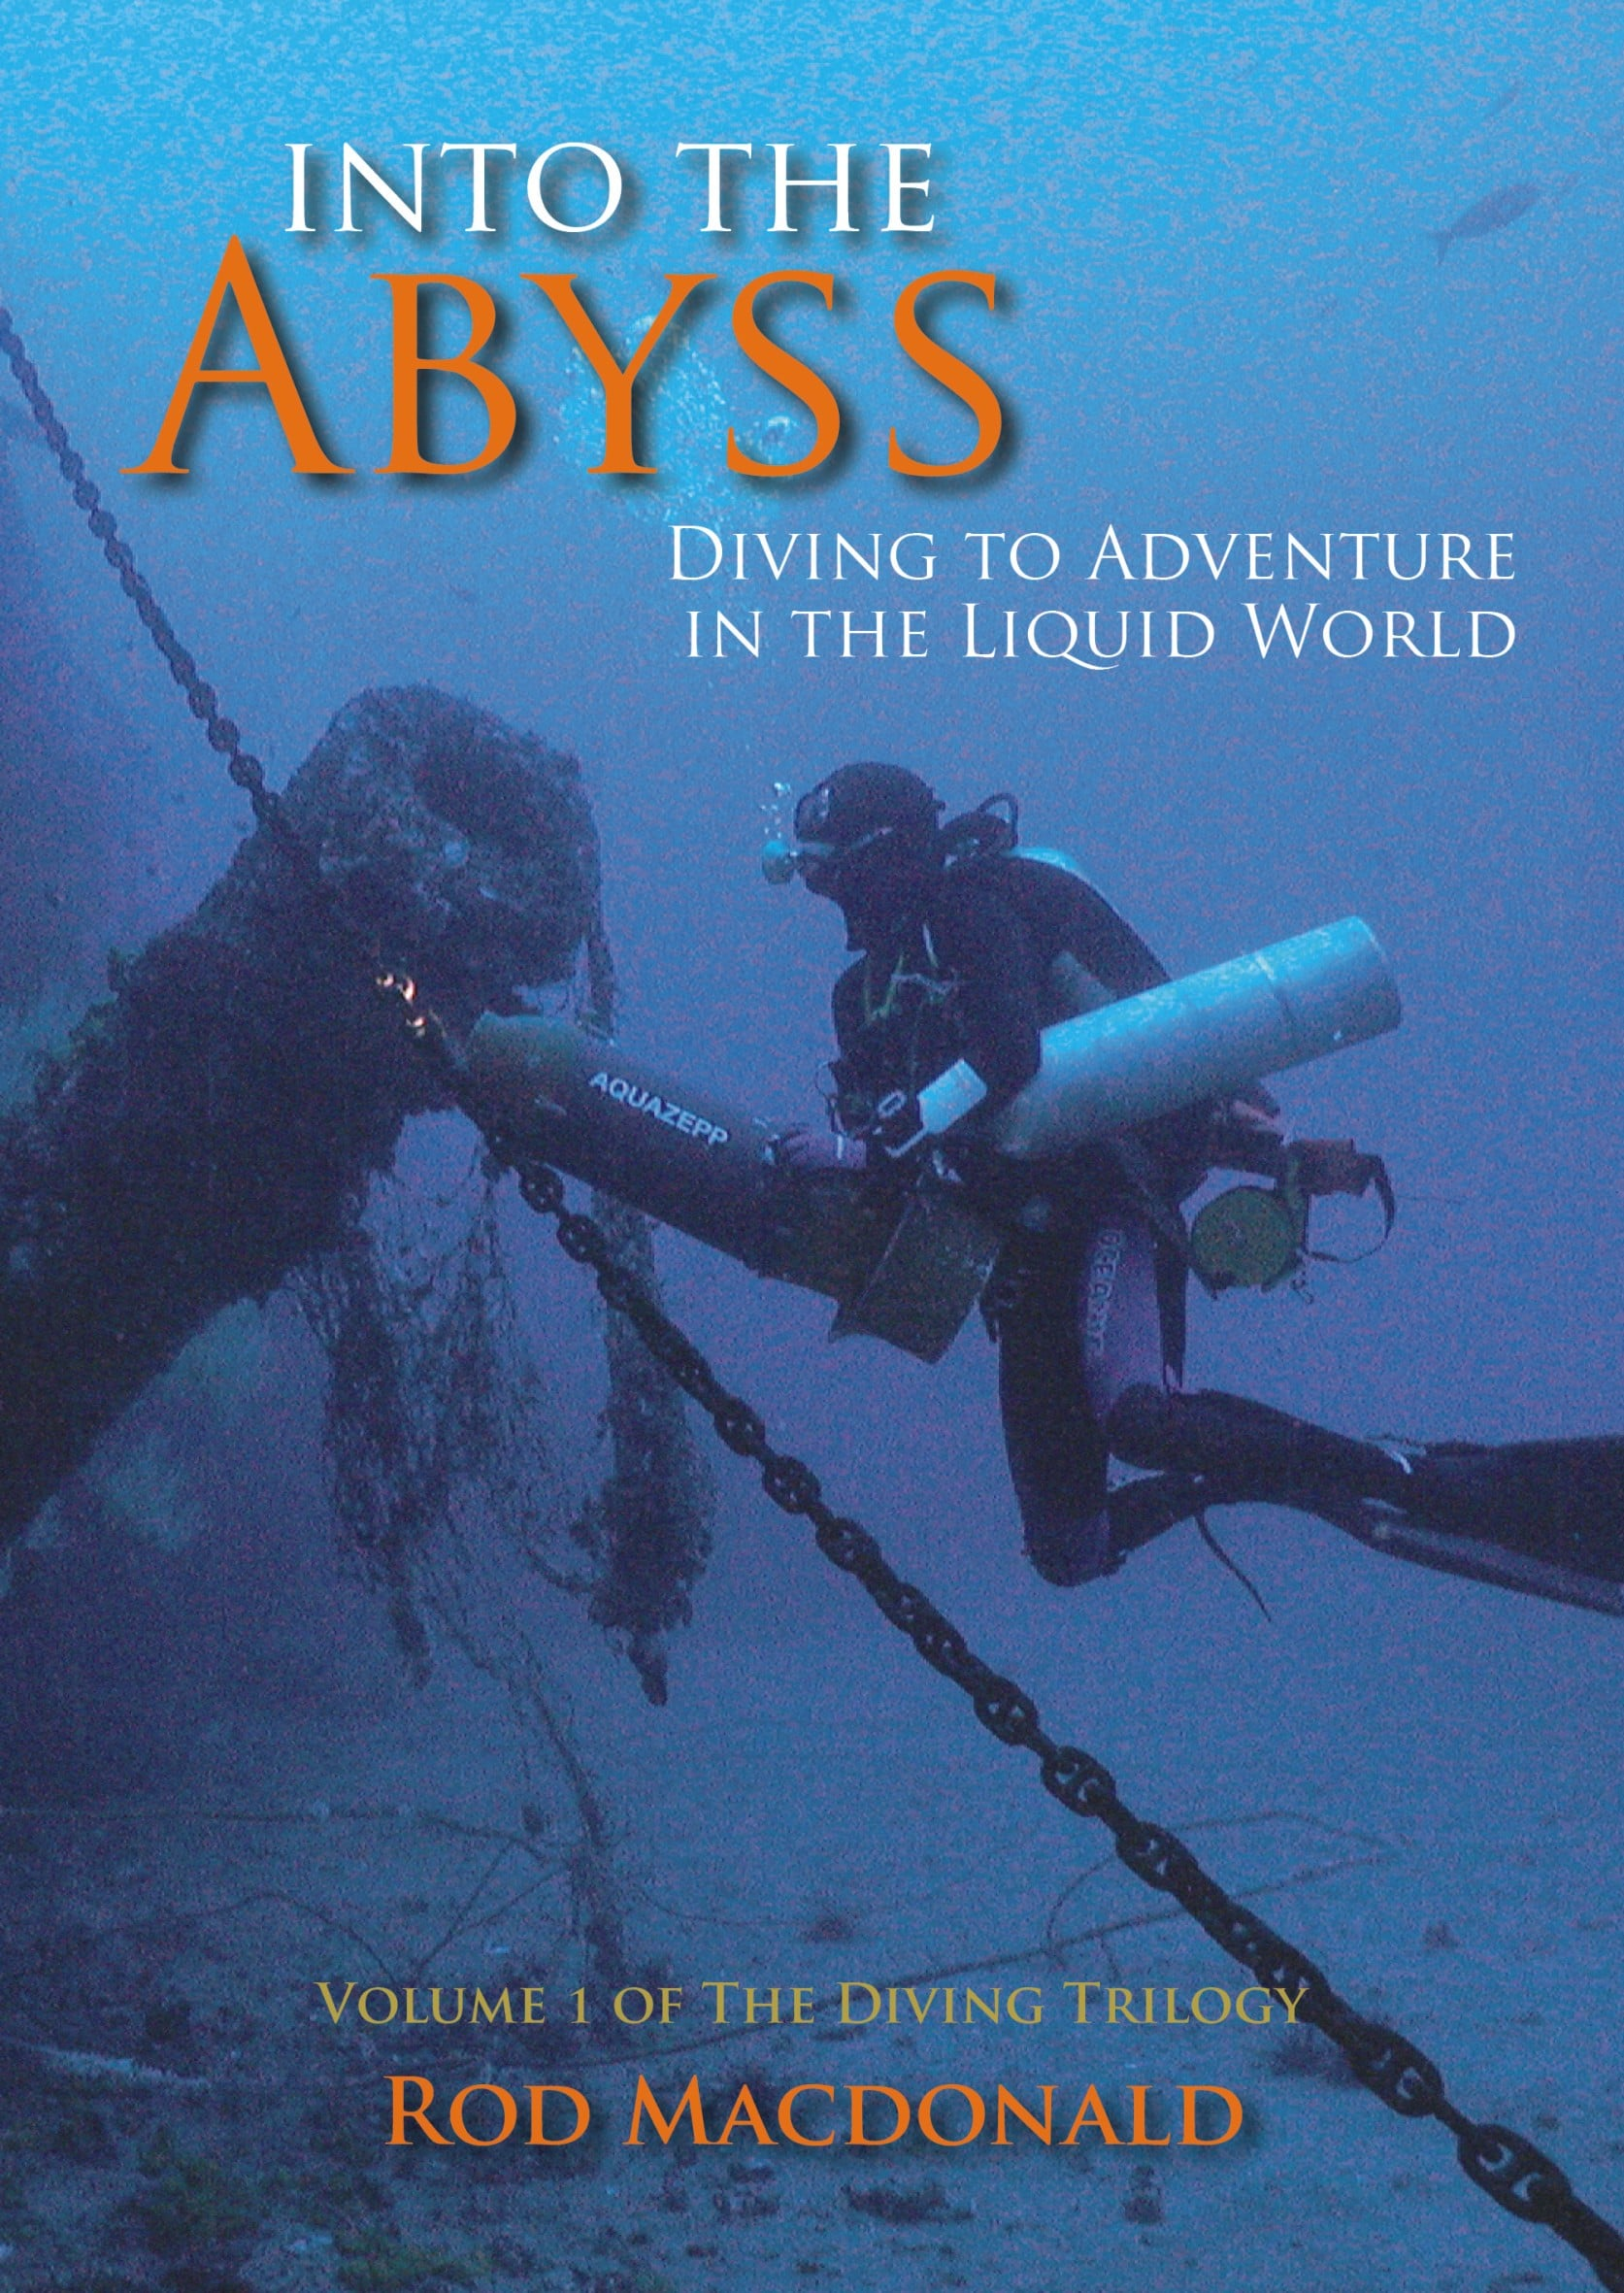 Rod MacDonald's 'Into The Abyss'